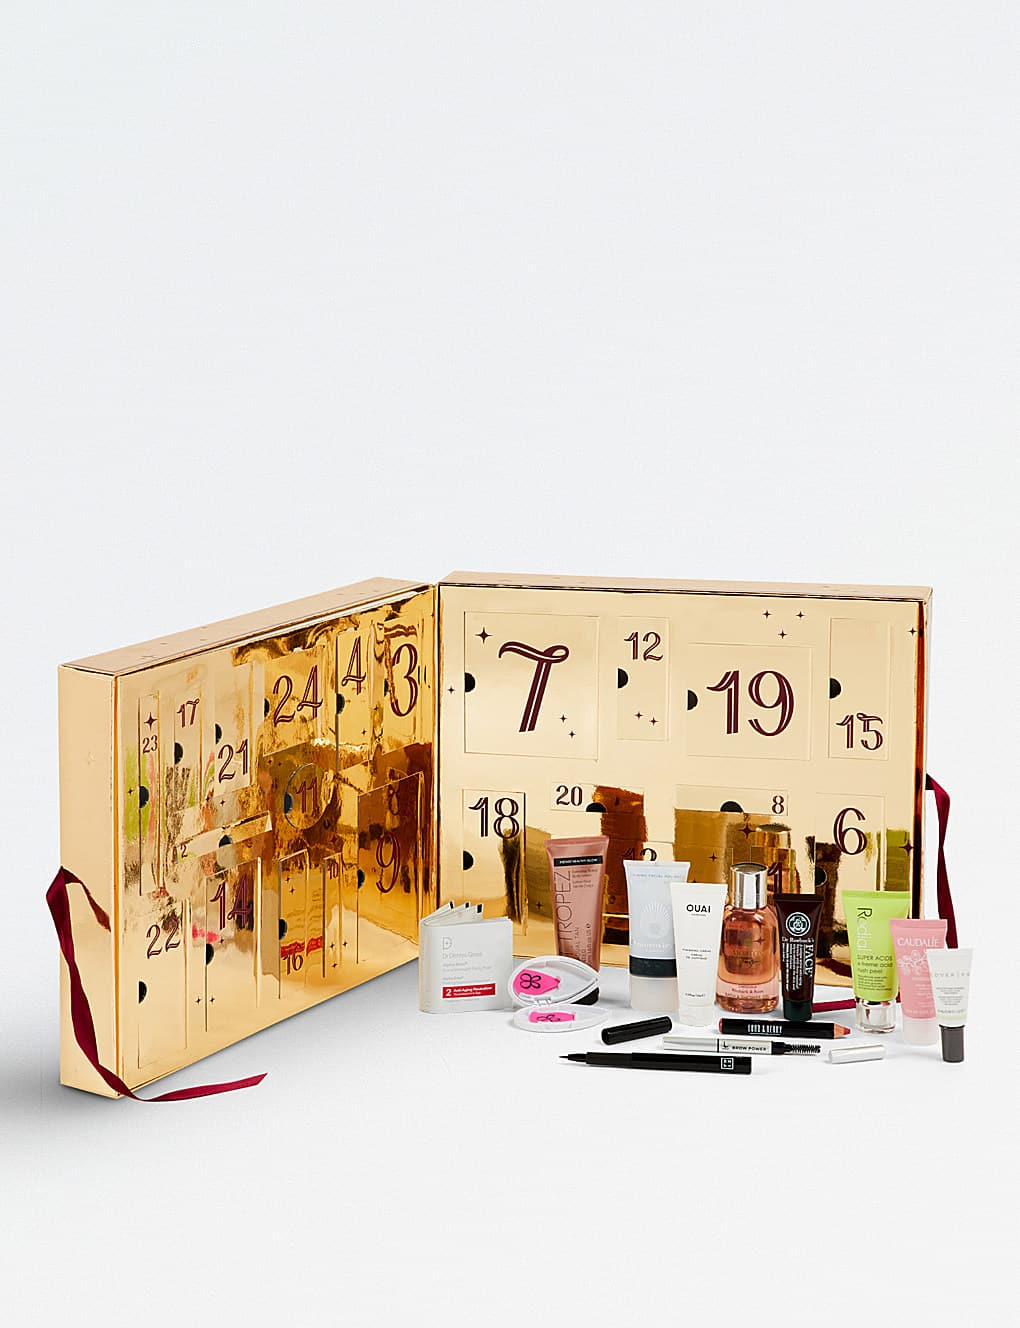 2017 SELFRIDGES Beauty Advent Calendar Available Now + Full Spoilers!